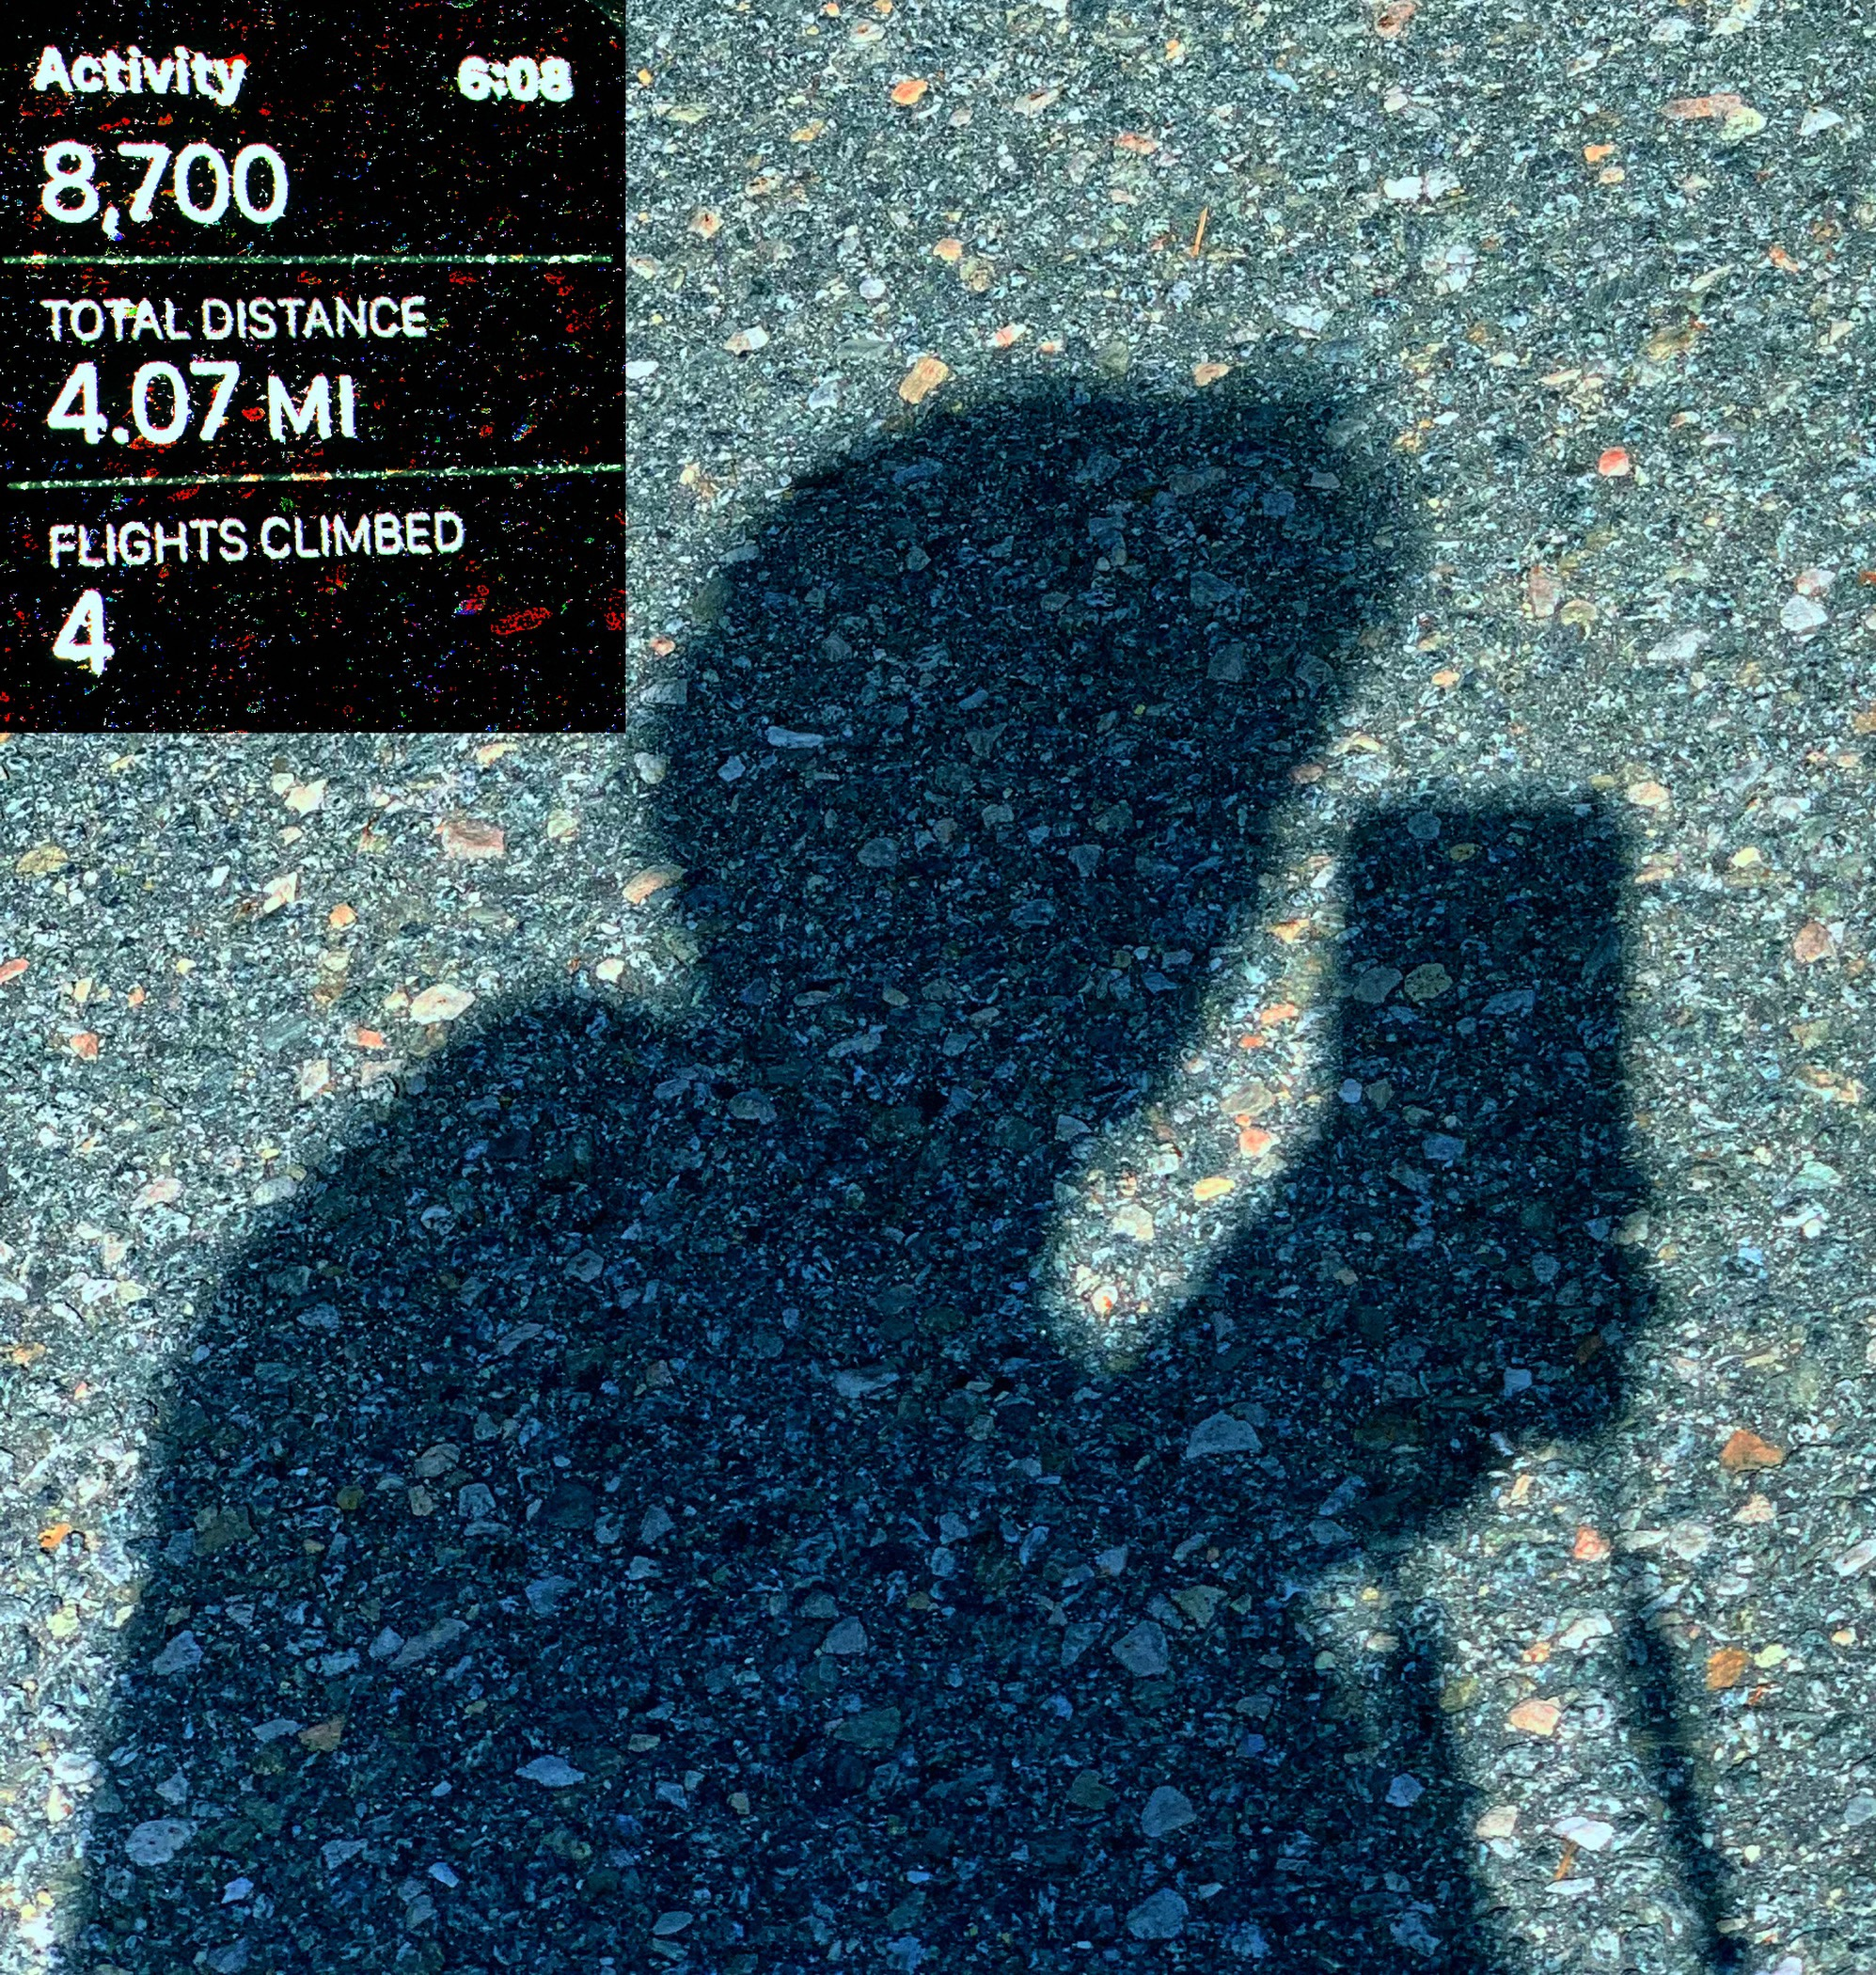 August 24, 2019 - Me and my shadow…